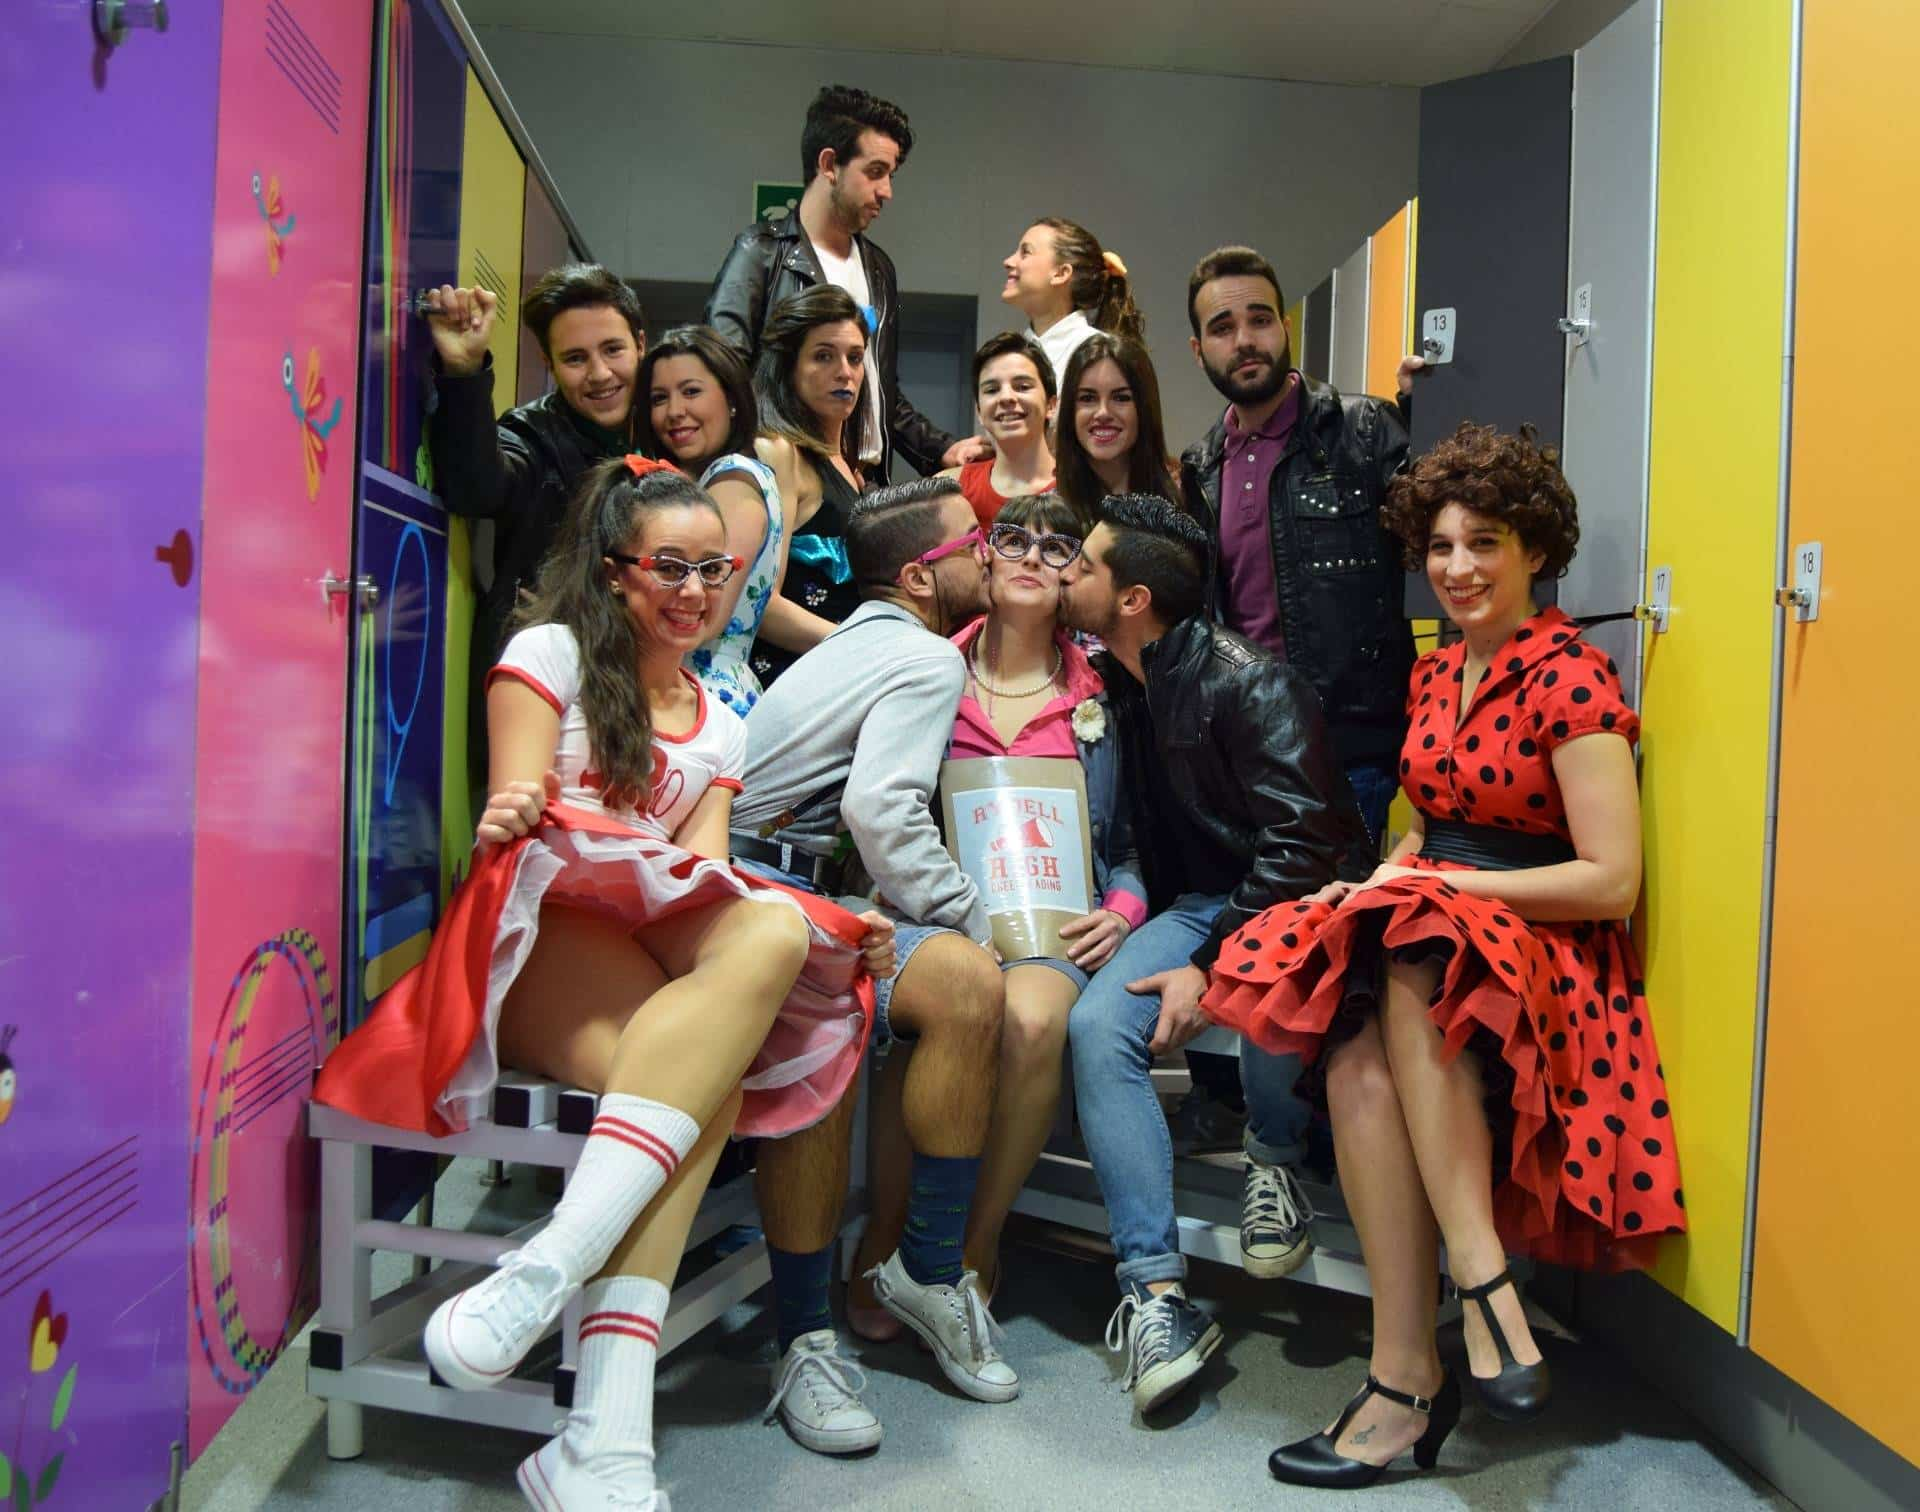 Elenco del Tributo a Grease